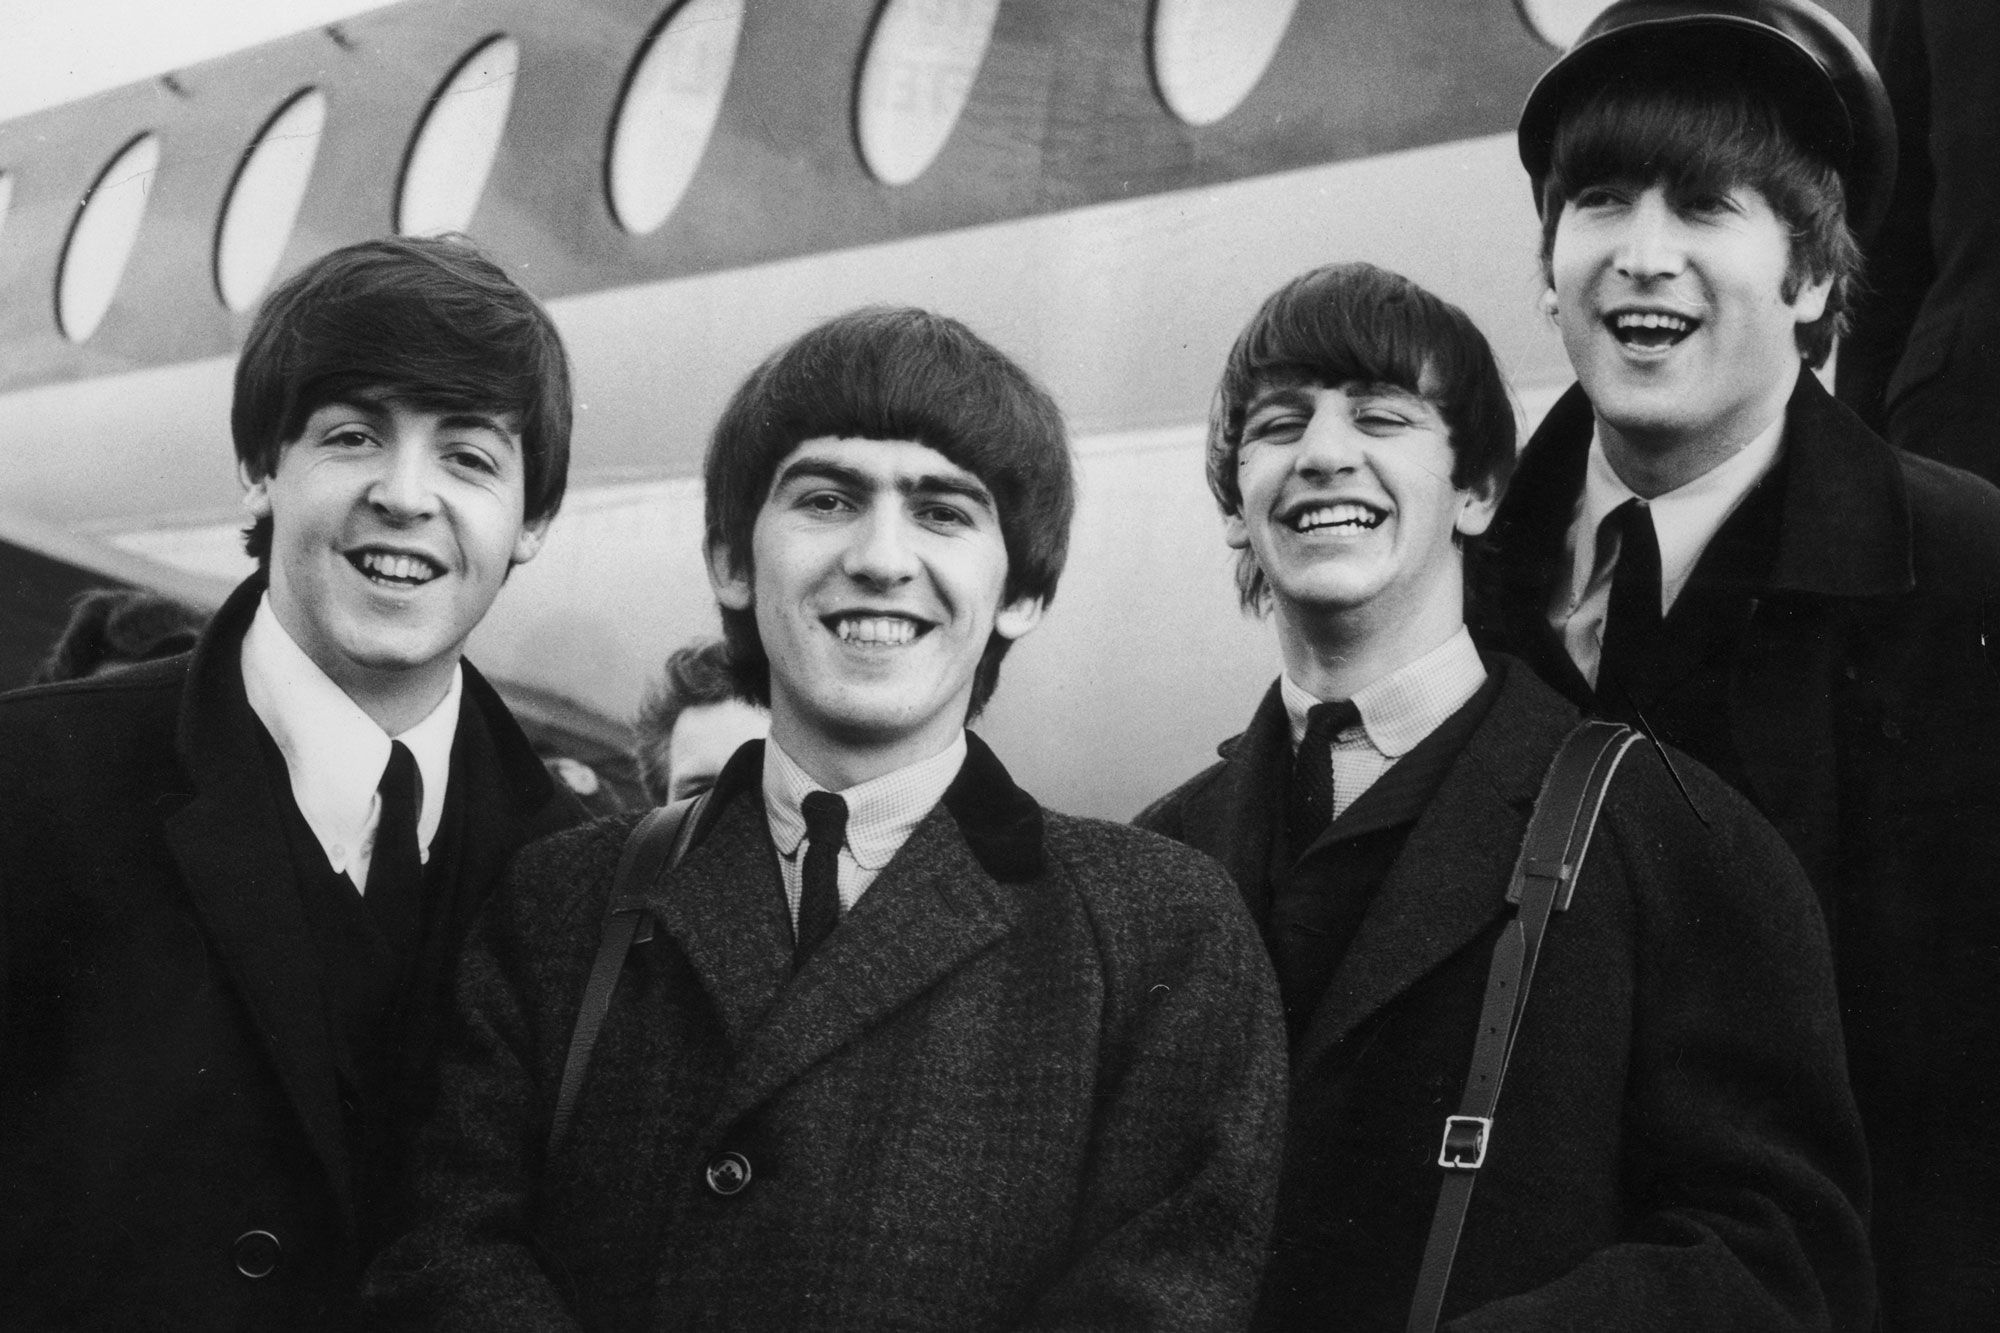 The Beatles remain a pop culture phenomenon even among Gen Z fans. Here's why